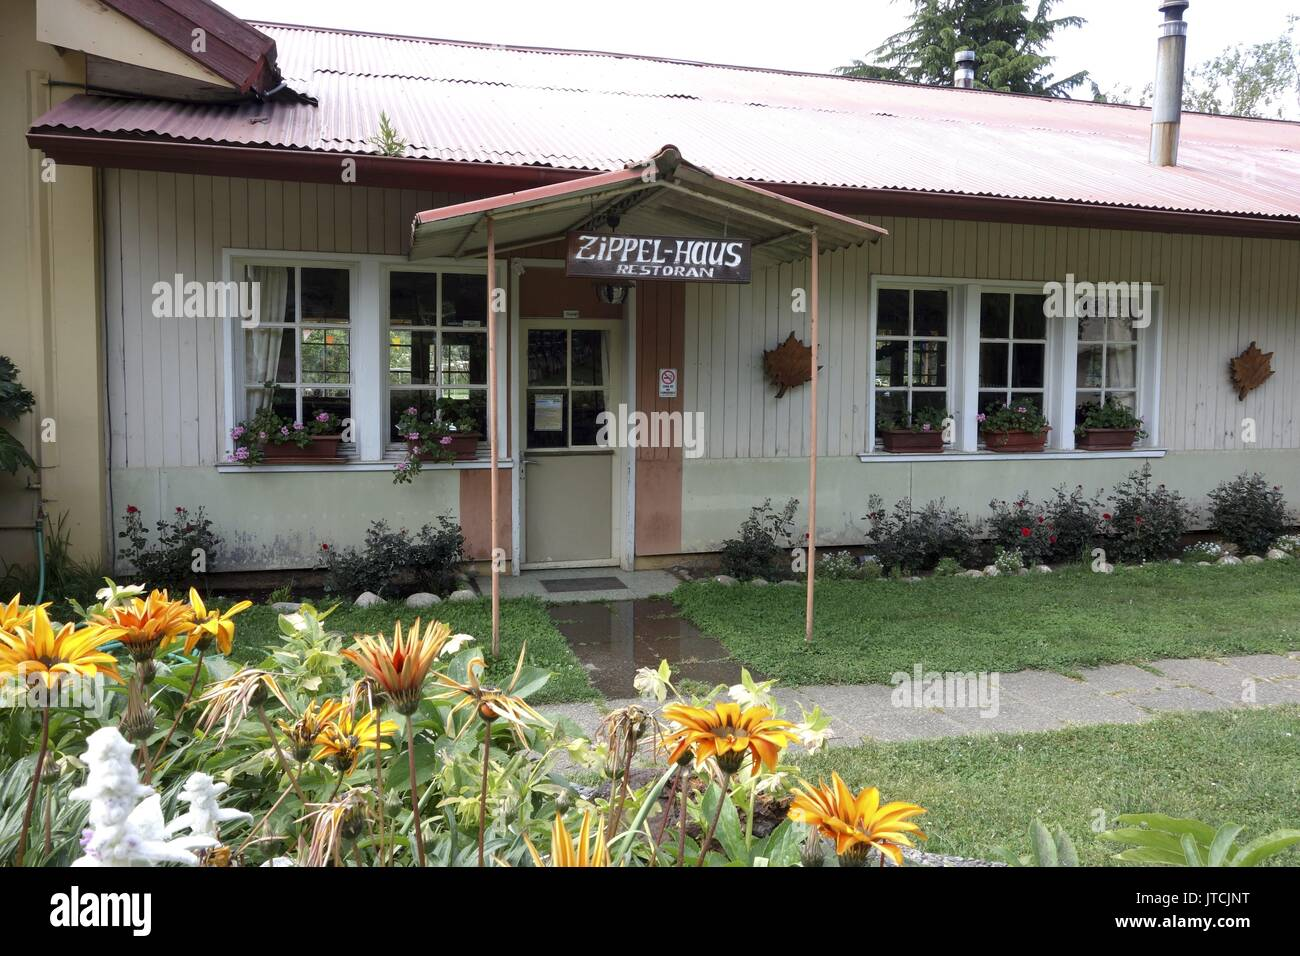 """The """"Zippel-Haus"""" in Villa Baviera - formerly the meeting hall of the infamous Colonia Dignidad - now is a restaurant. Stock Photo"""